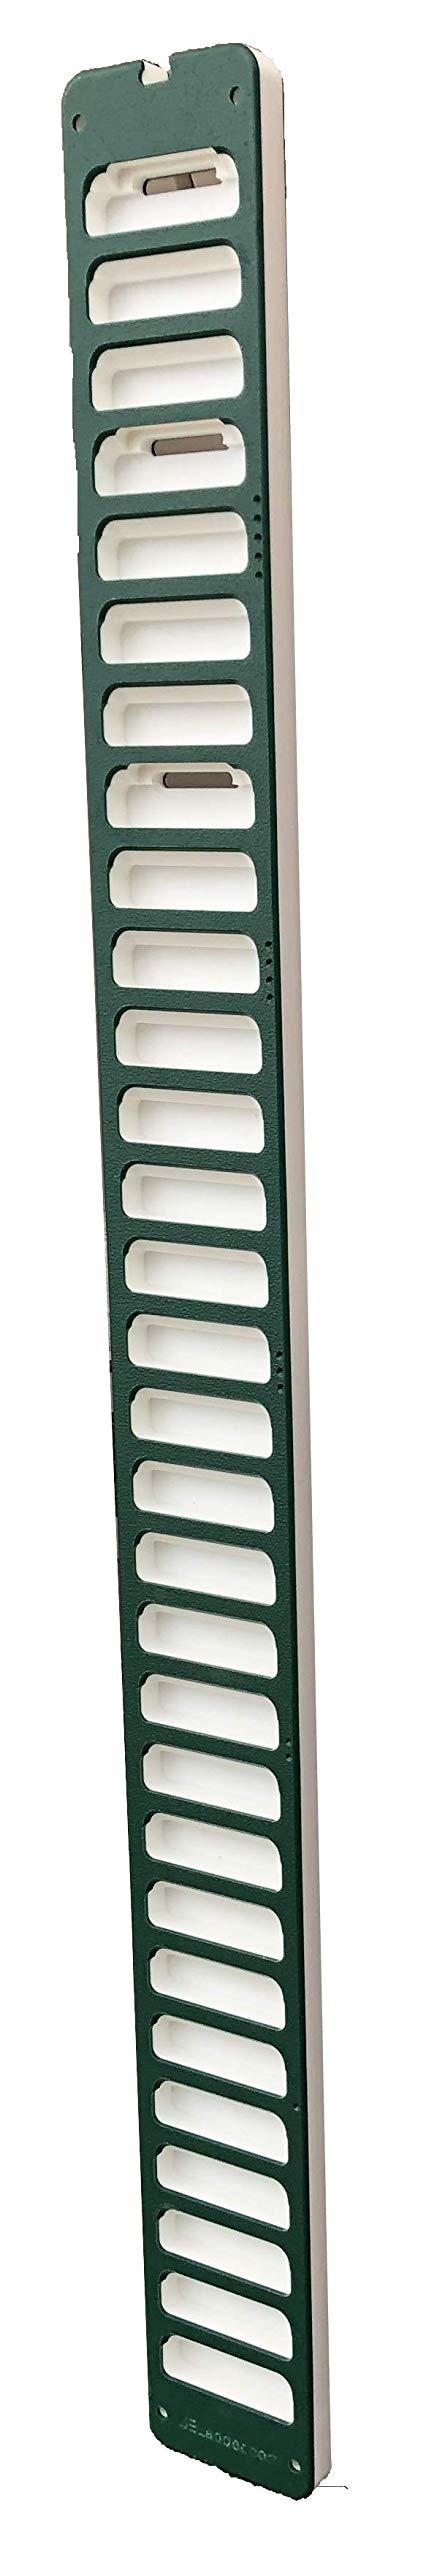 UELadder: The Patented Shoulder Finger Ladder with an Over-The-Door Mount That Gives A Proper Stretch Anywhere